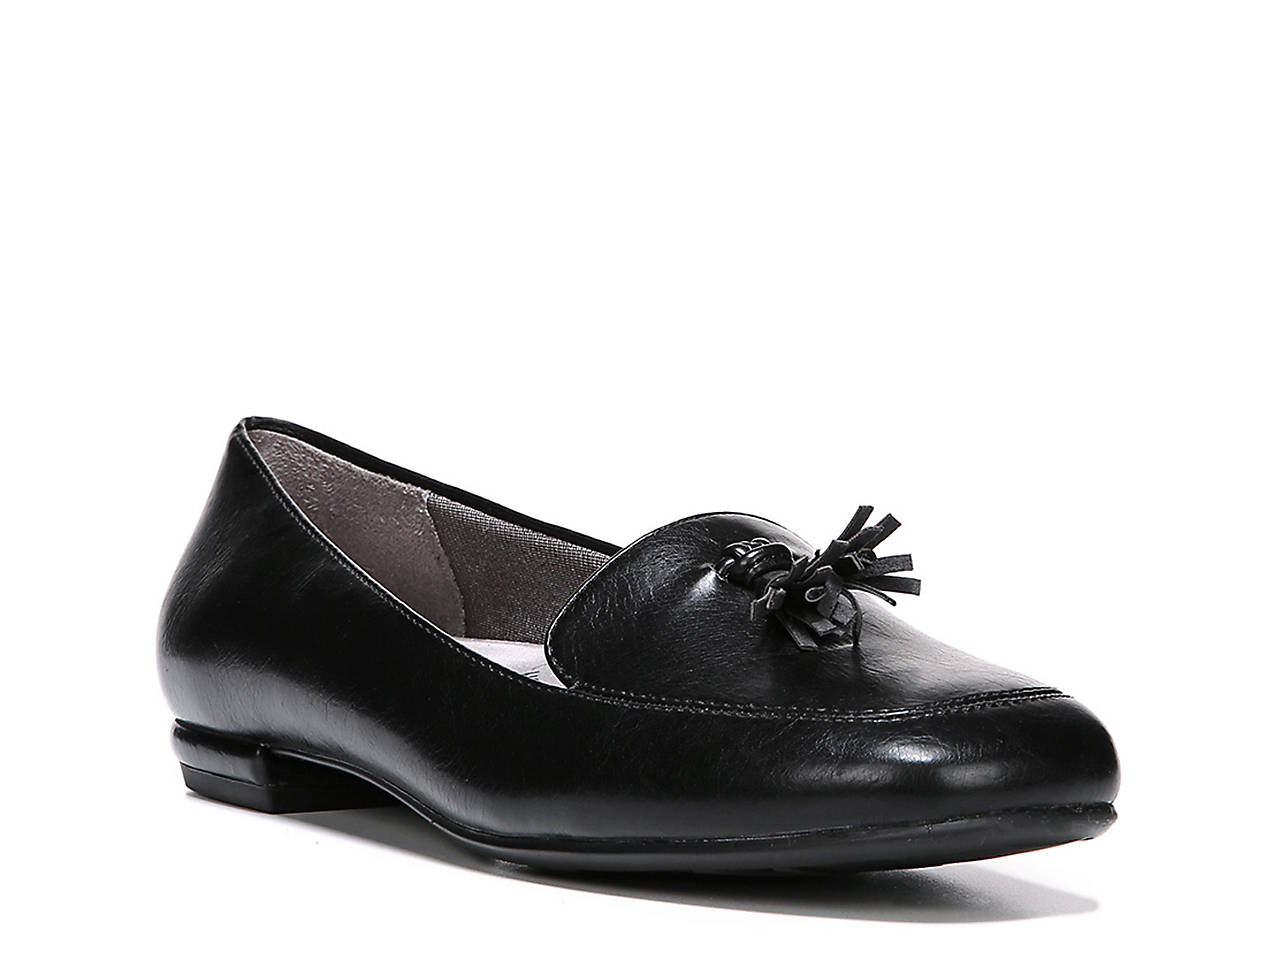 d8a7aed620fe80 LifeStride Ballad Loafer Women s Shoes